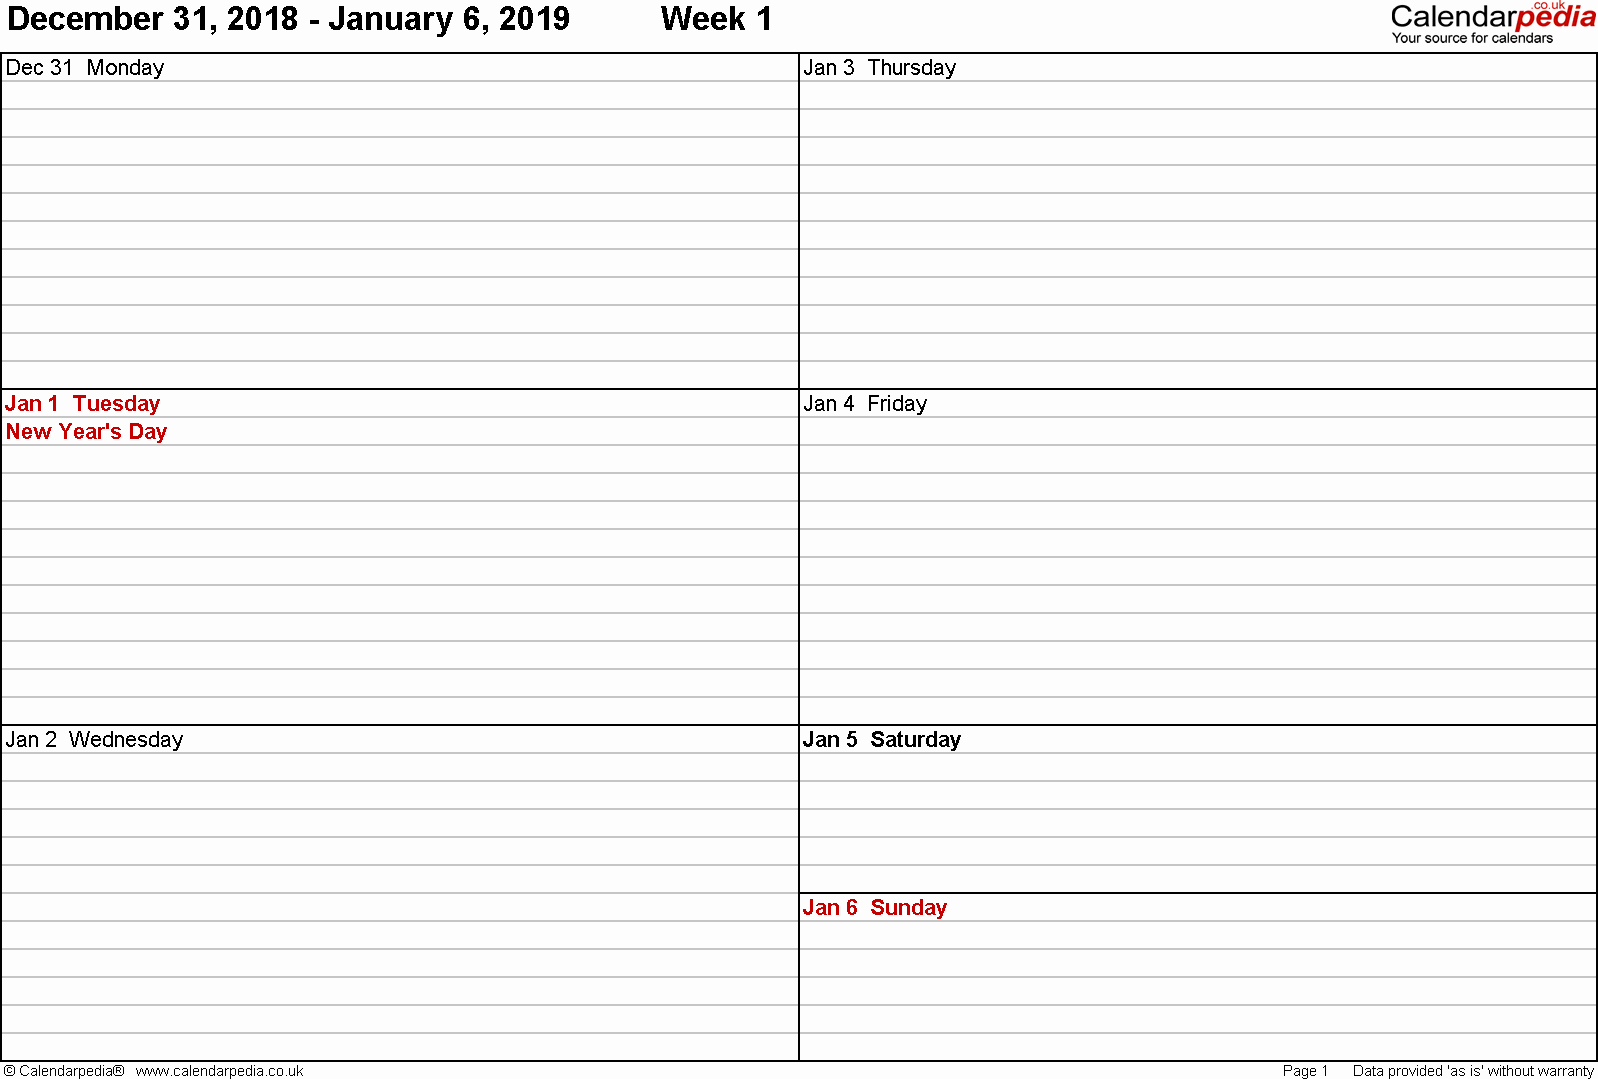 Free Printable Weekly Calendar 2019 Best Of Weekly Calendar 2019 Uk Free Printable Templates for Pdf